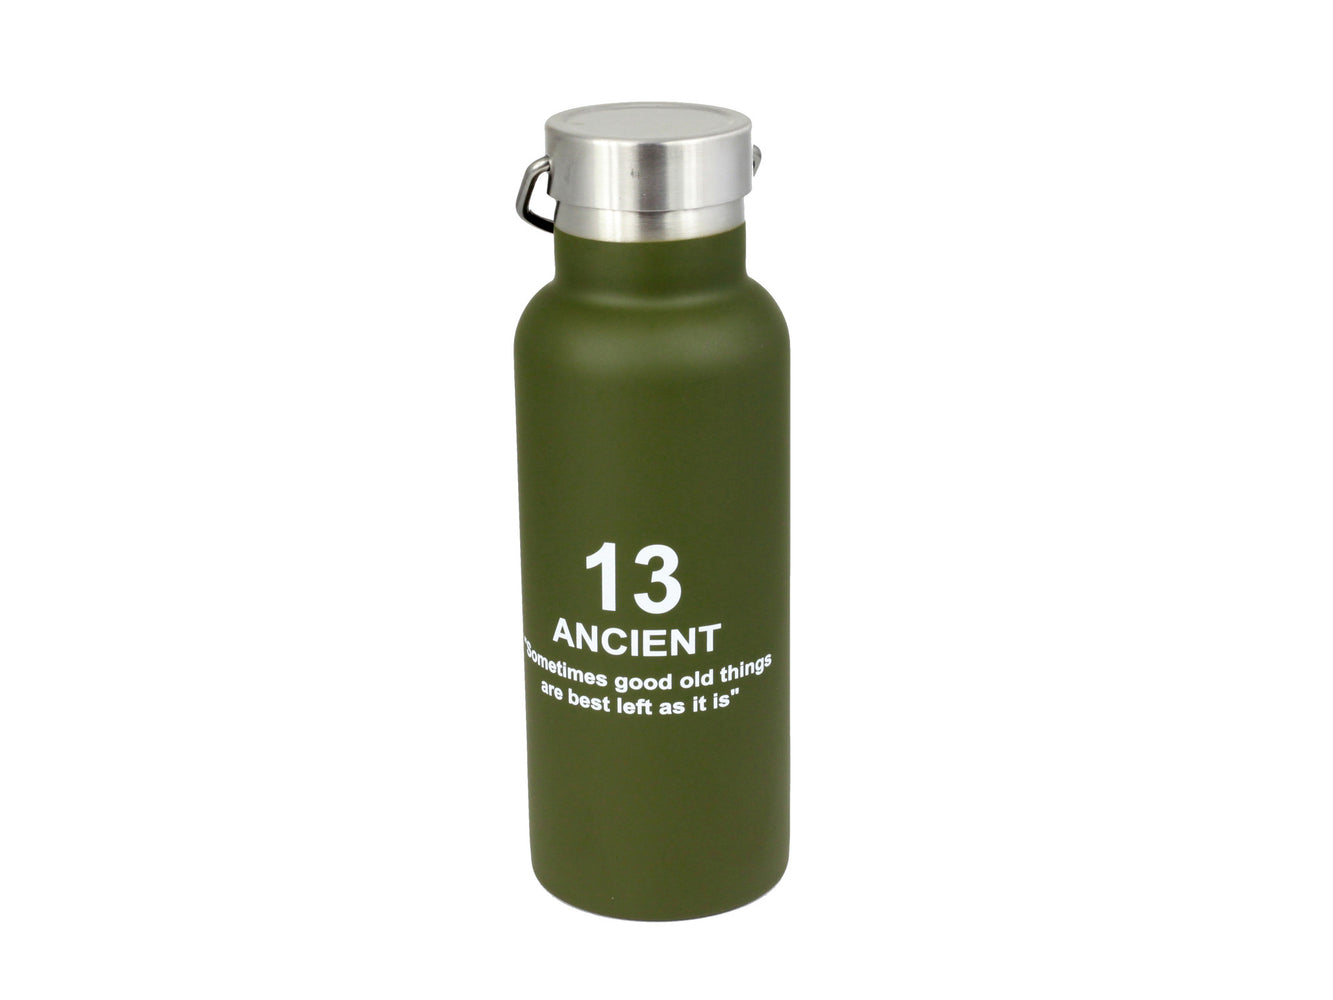 Ancient Stainless Bottle | Army Green by Showa - Bento&co Japanese Bento Lunch Boxes and Kitchenware Specialists